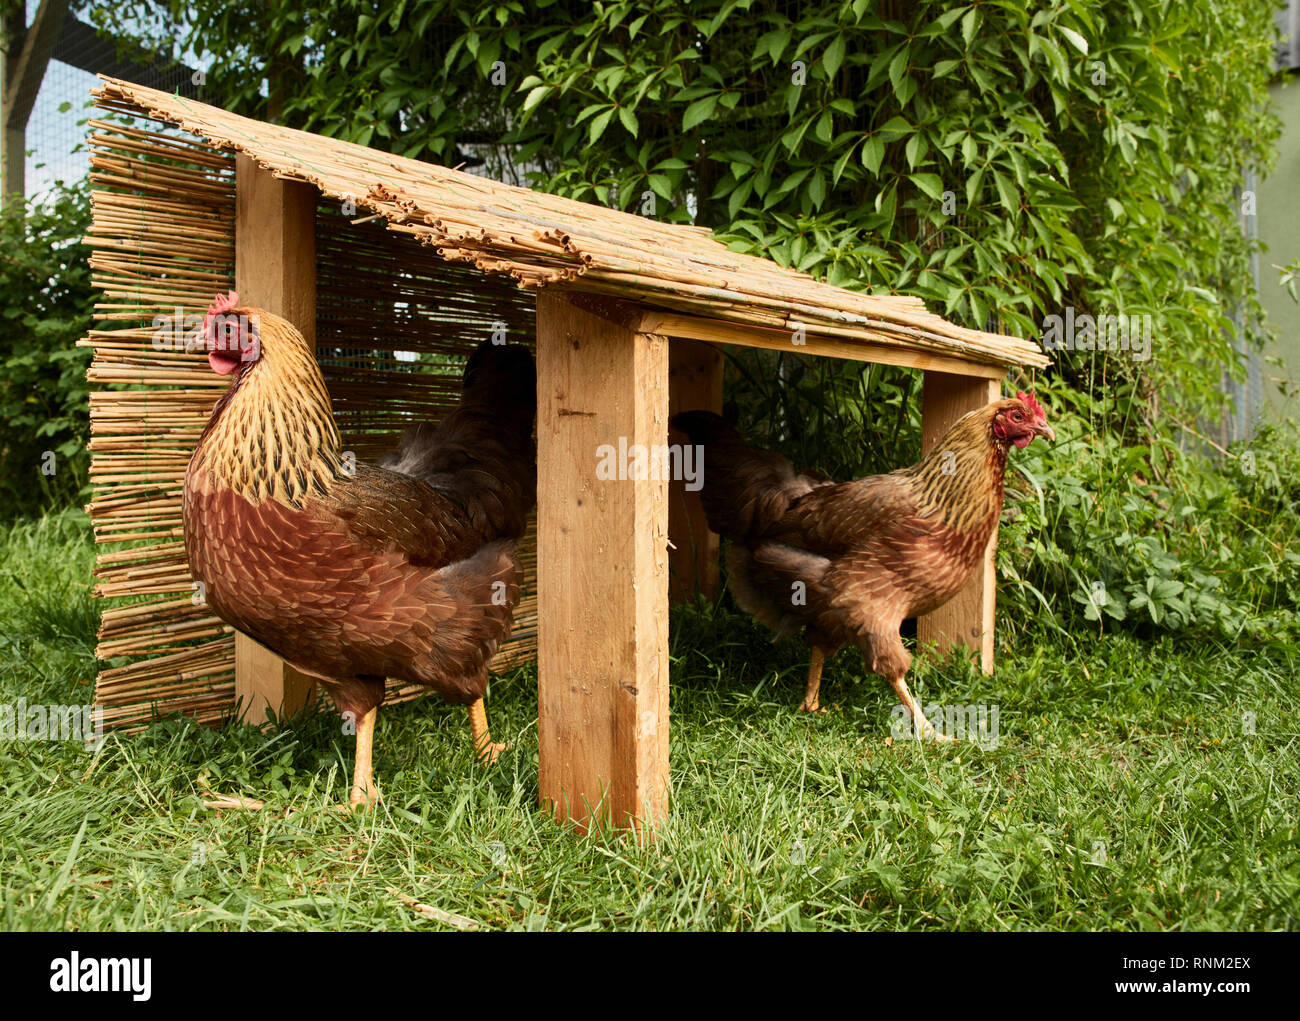 Welsummer Chicken. Pair of hens in a selfmade shelter in a garden. Germany - Stock Image